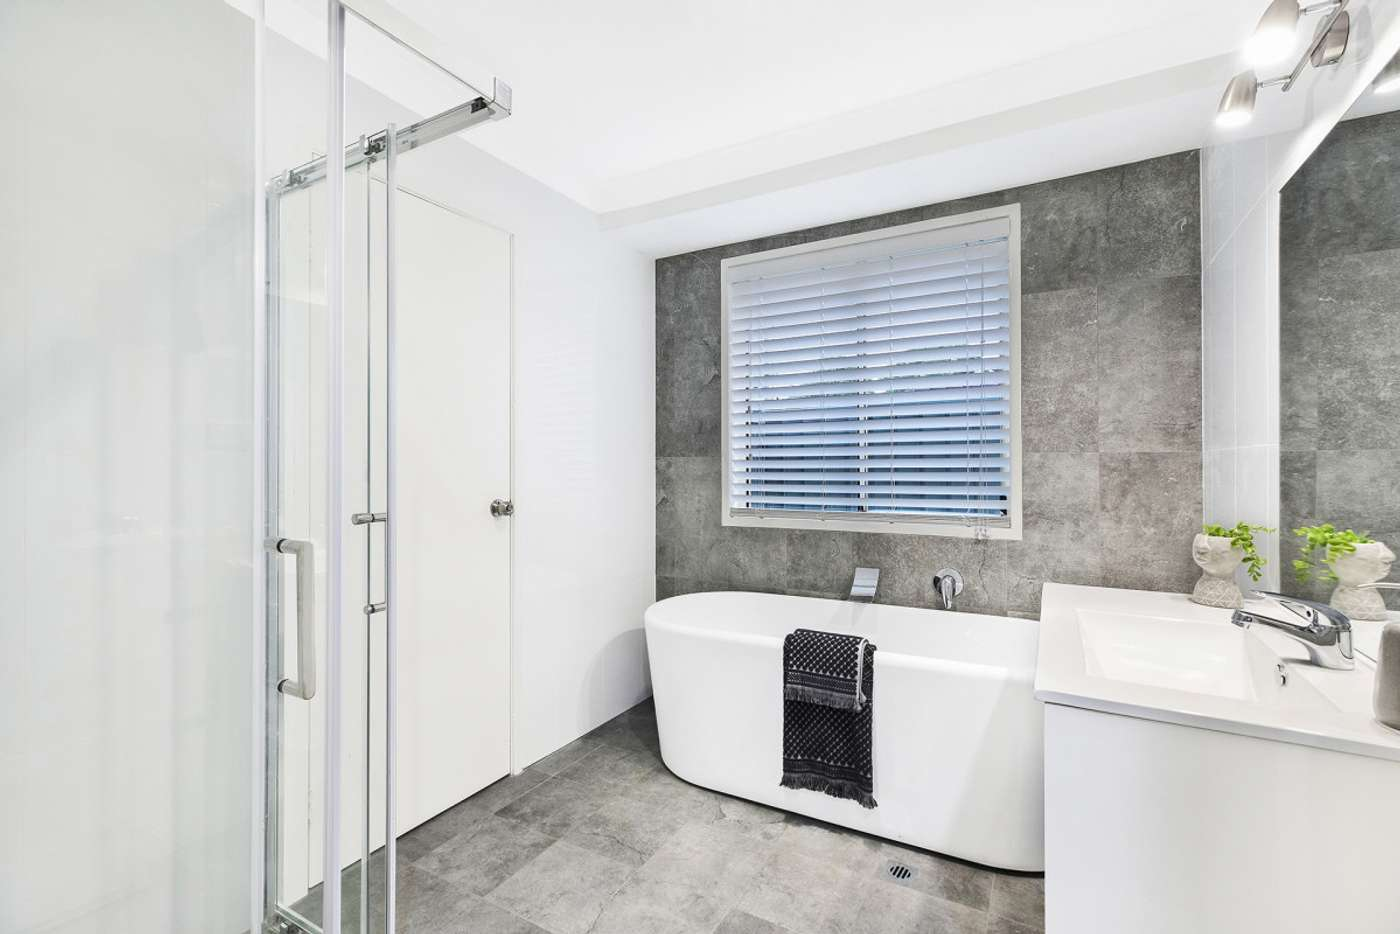 Seventh view of Homely house listing, 4 Lara Close, Ourimbah NSW 2258